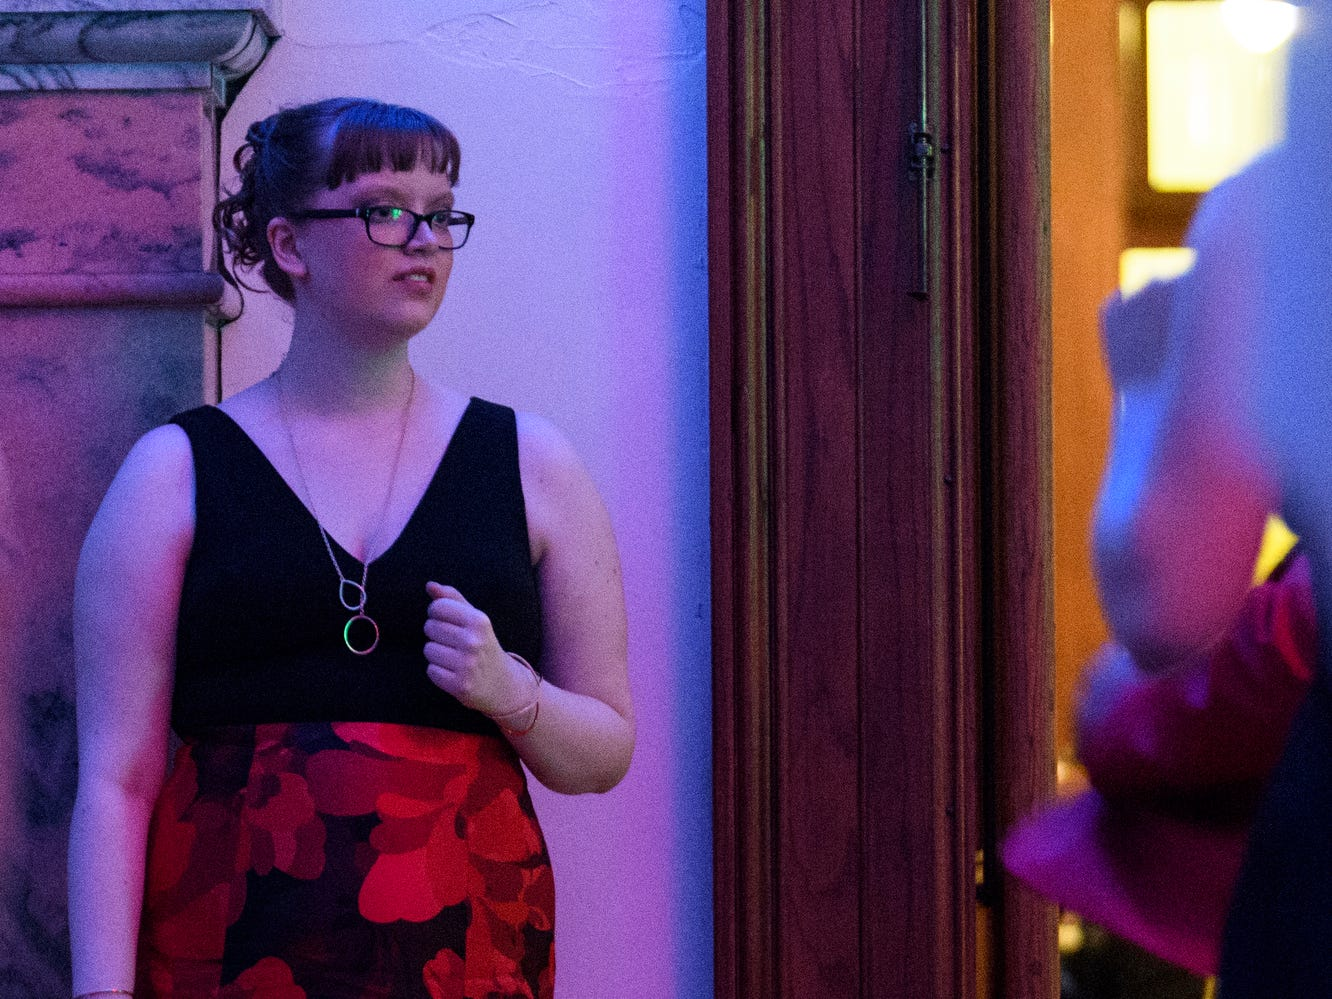 Bosse High School student Caroline Martin watches other students on the dance floor during prom at the Old Vanderburgh County Courthouse in downtown Evansville, Ind., Saturday, April 6, 2019.